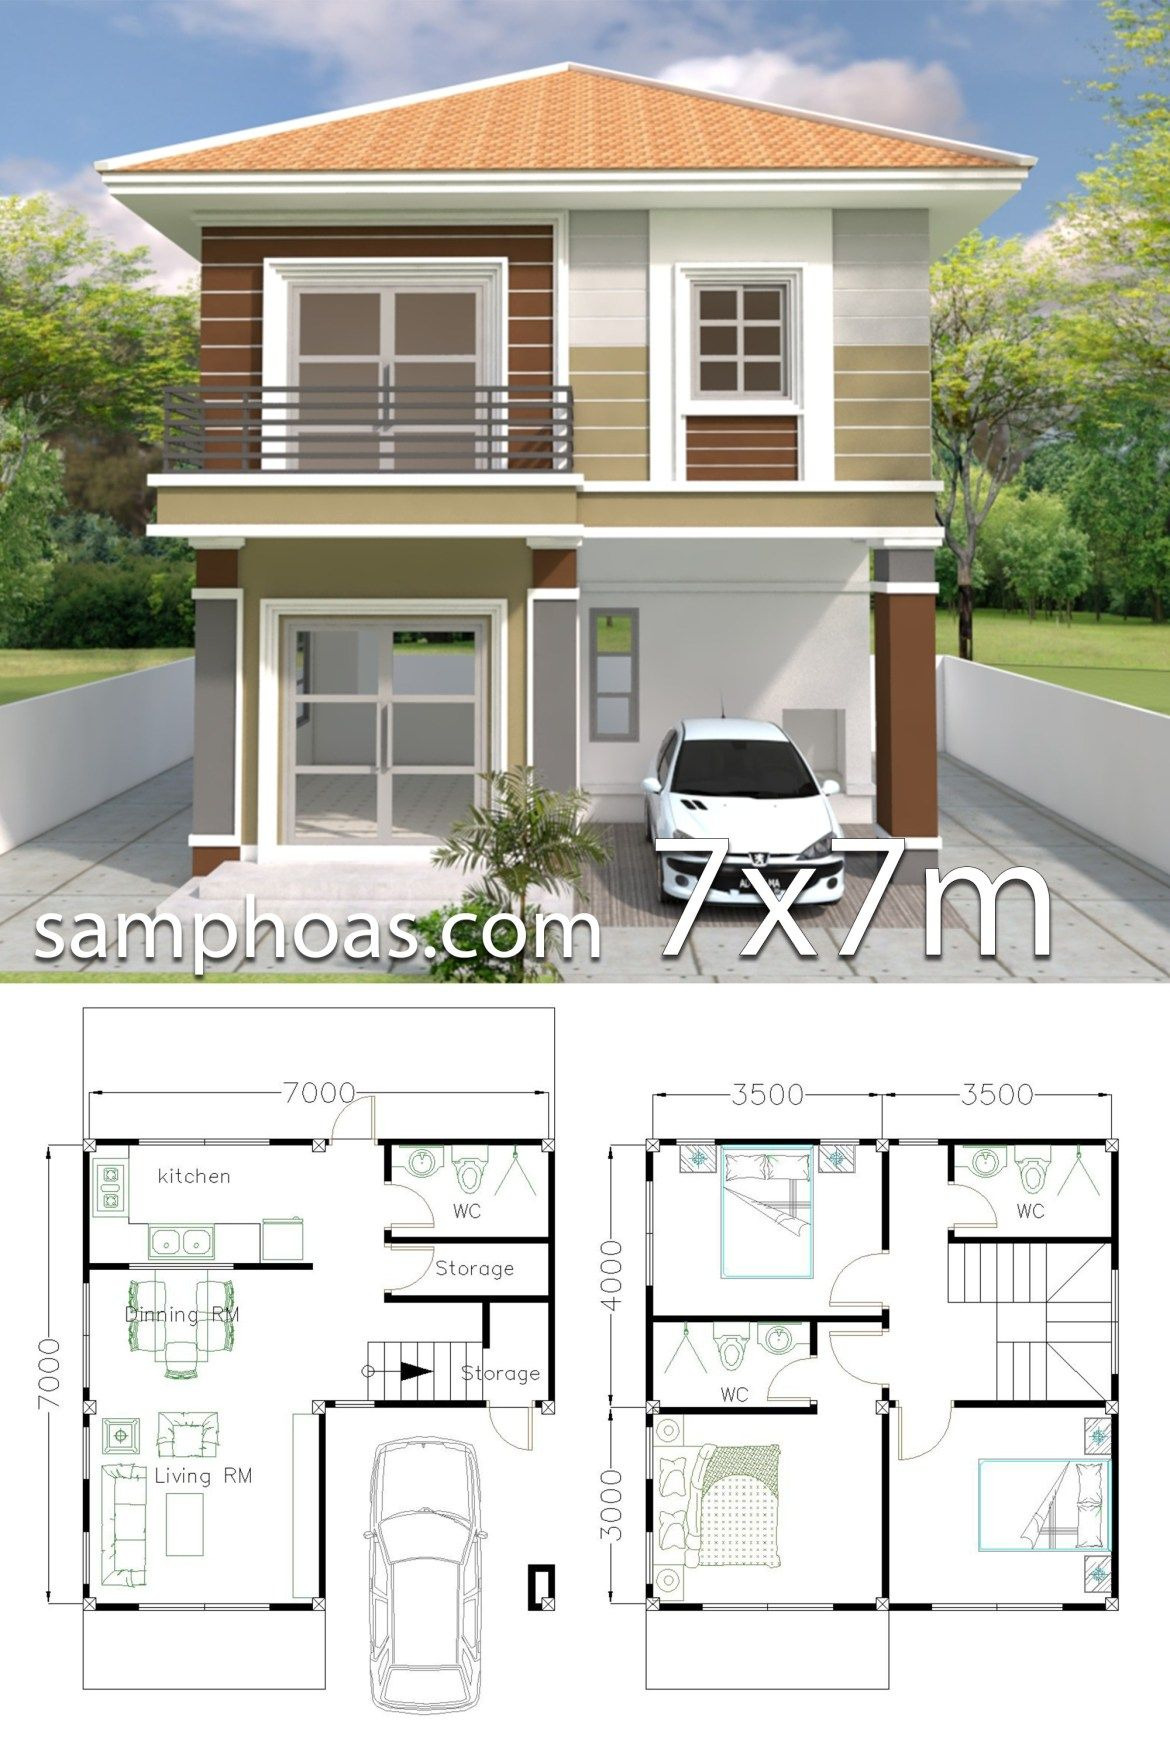 House Plans for Duplexes Three Bedroom Best Of Home Design Plan 7x7m with 3 Bedrooms